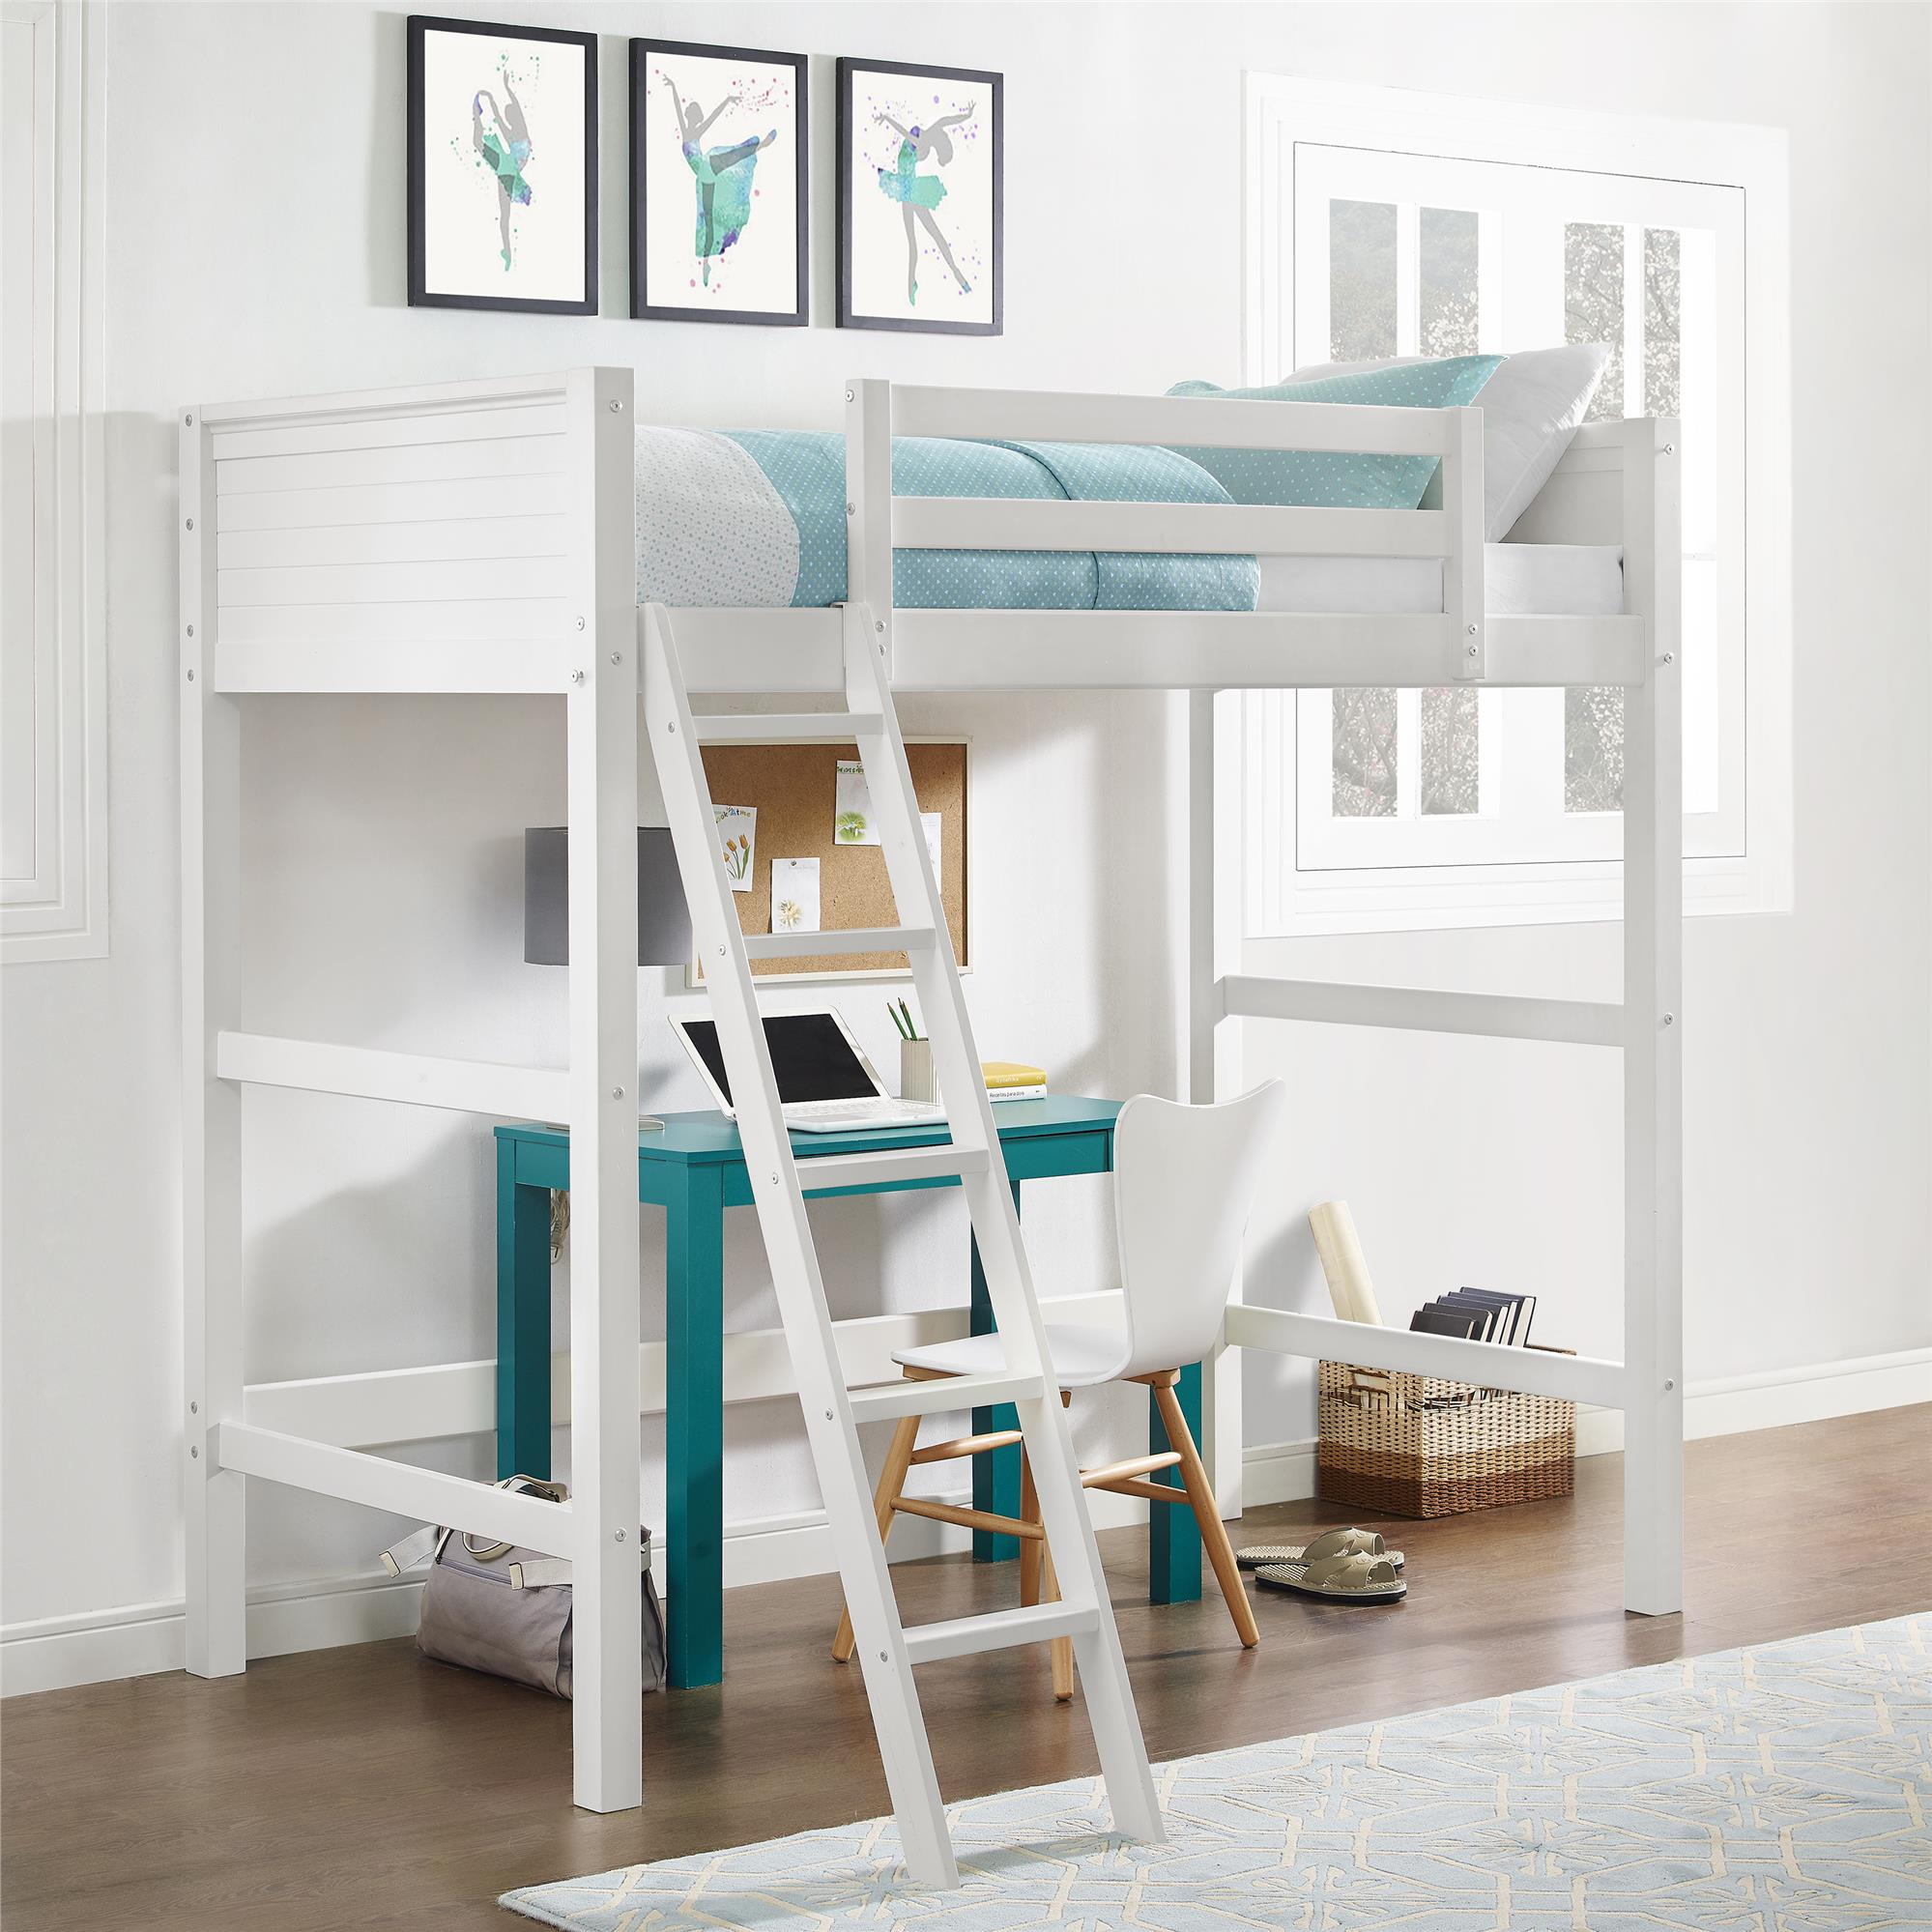 Collection loft beds your zone twin wood loft bed, multiple colors mhvcsiw